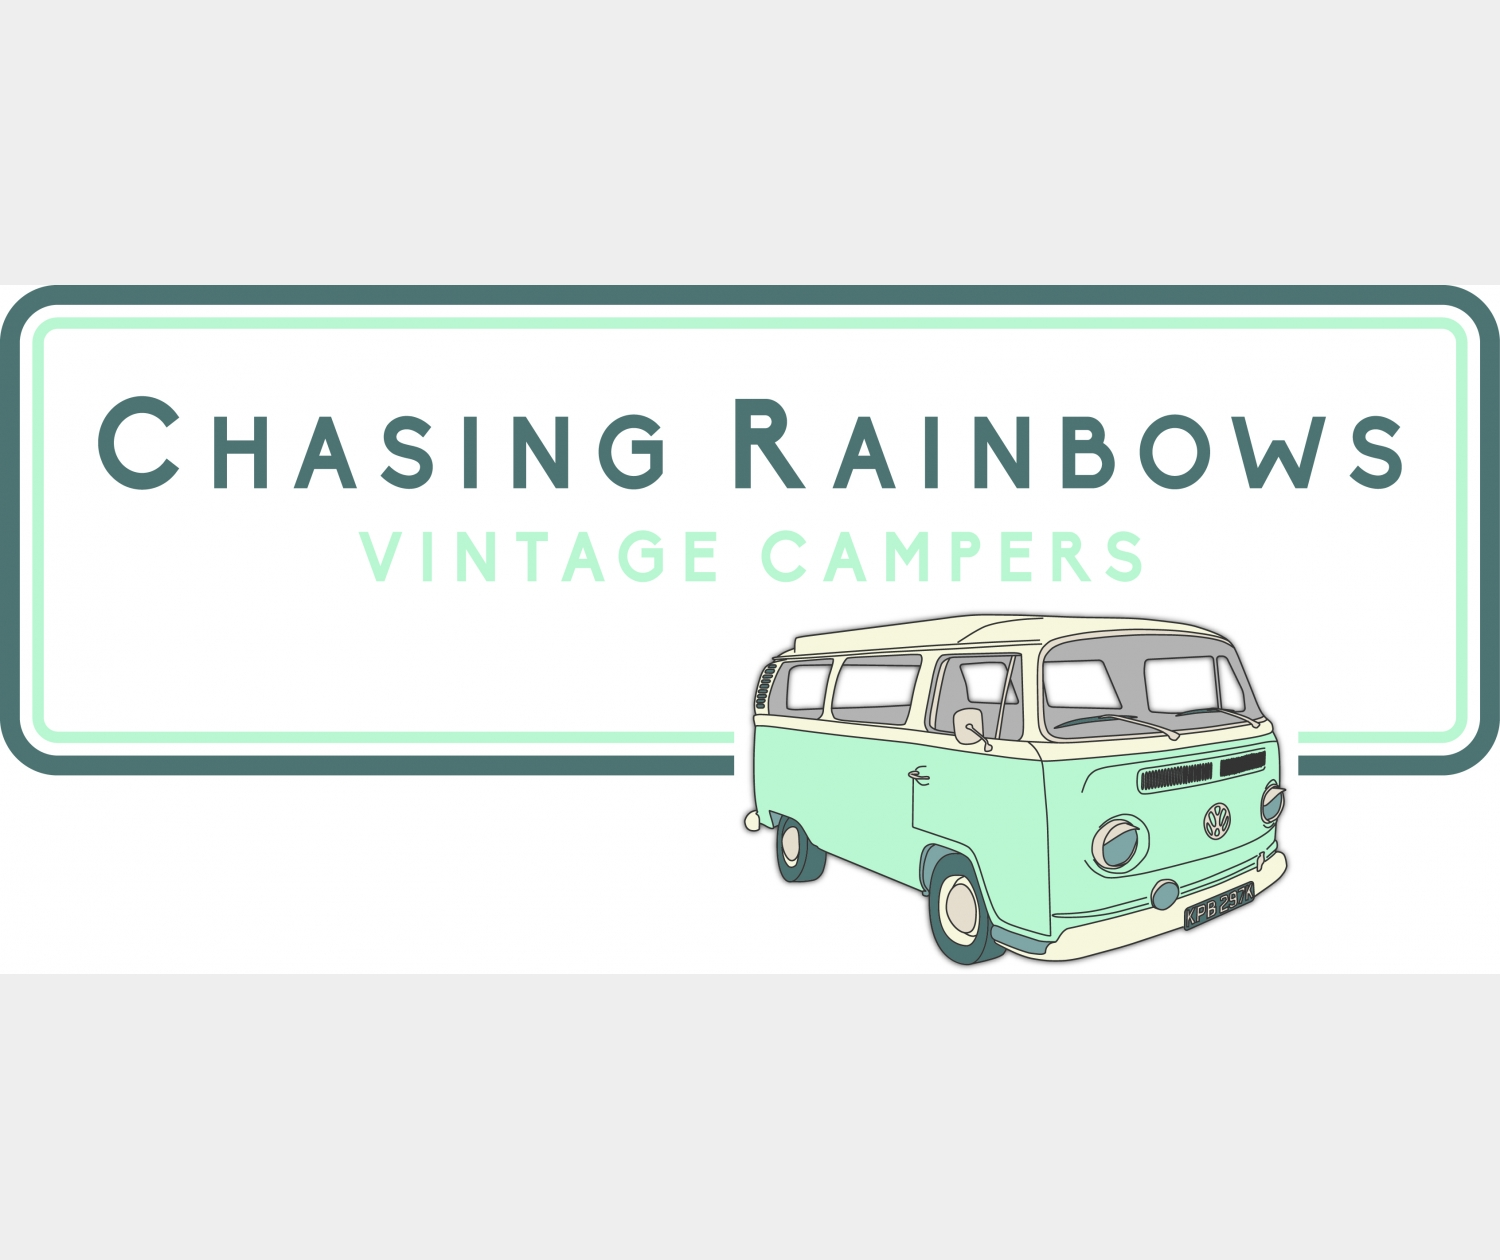 Chasing Rainbows Vintage Campers